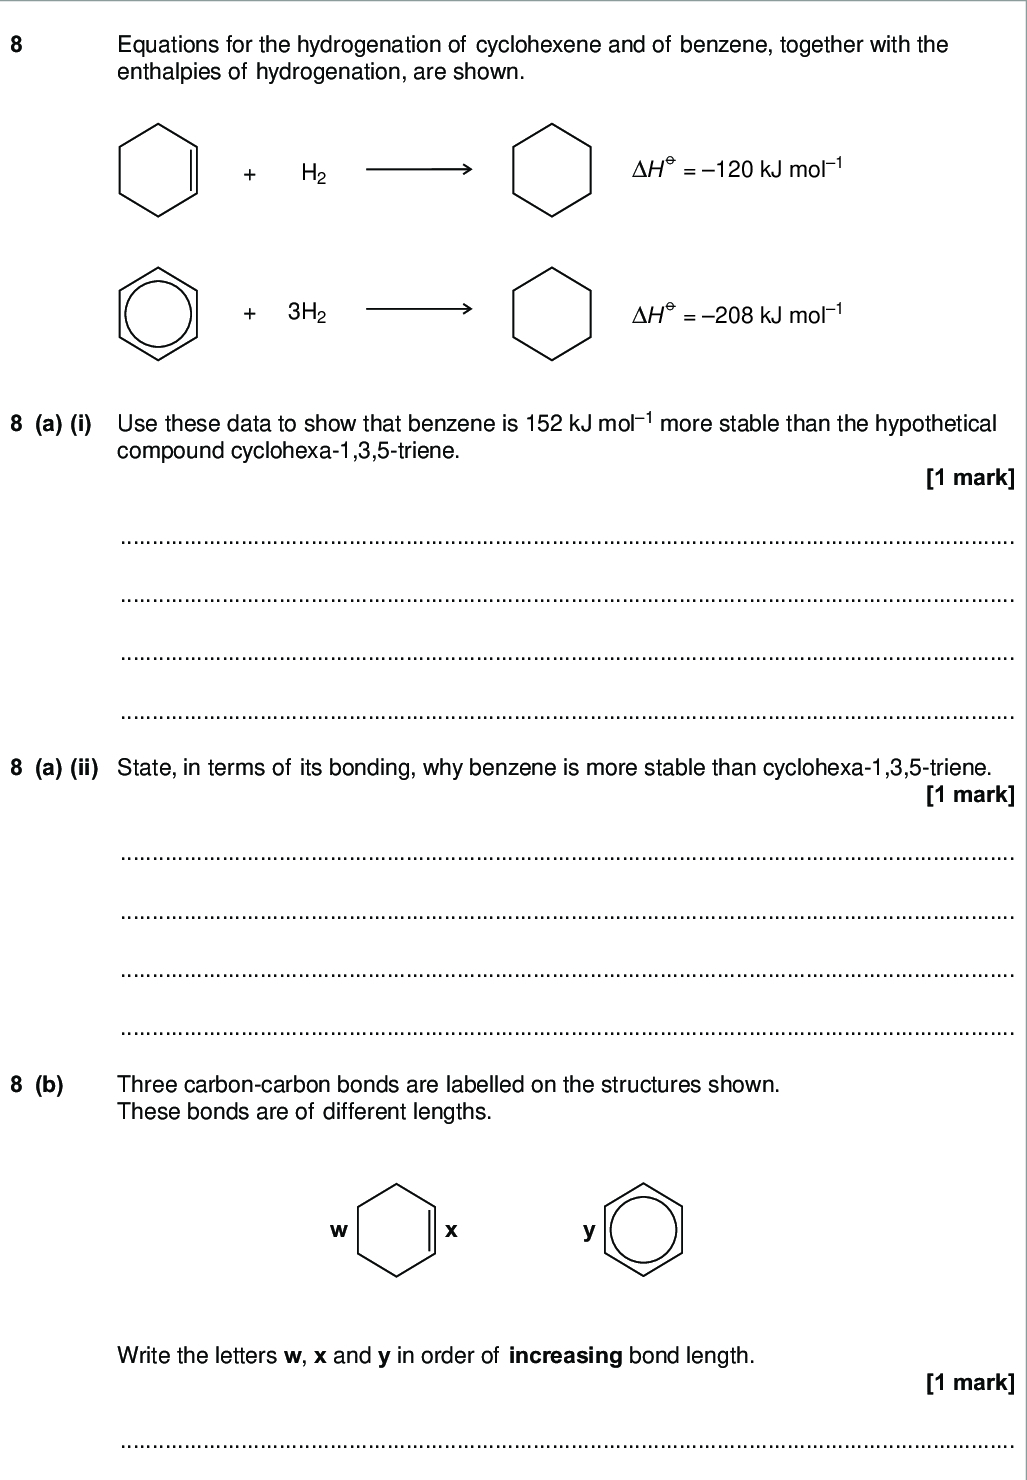 do not write outside the box equations for the hydrogenation of cyclohexene and of benzene together with the enthalpies of hydrogenation are shown h h h kj mol h kj mol a i use these data to show that benzene is kj mol more stable than the hypothetical compound cyclohexa triene mark a ii state in terms of its bonding why benzene is more stable than cyclohexa triene mark b three carbon carbon bonds are labelled on the structures shown these bonds are of different lengths write the letters w x and y in order of increasing bond length mark wmp jun chem c the structures of two cyclic dienes are shown do not write outside the box cyclohexa diene cyclohexa diene c i use the enthalpy of hydrogenation data given opposite to calculate a value for the enthalpy of hydrogenation of cyclohexa diene mark c ii predict a value for the enthalpy of hydrogenation of cyclohexa diene mark c iii explain your answers to questions c i and c ii in terms of the bonding in these two dienes marks turn over wmp jun chem